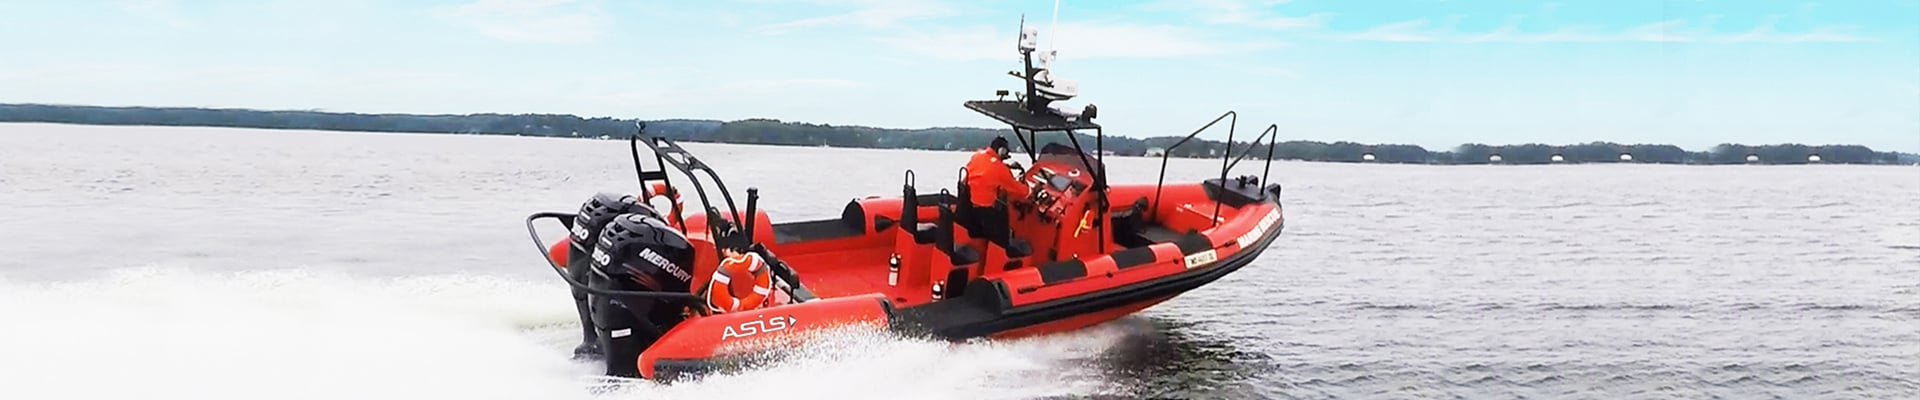 Search-Rescue-Rigid-Inflatable-boats-SAR